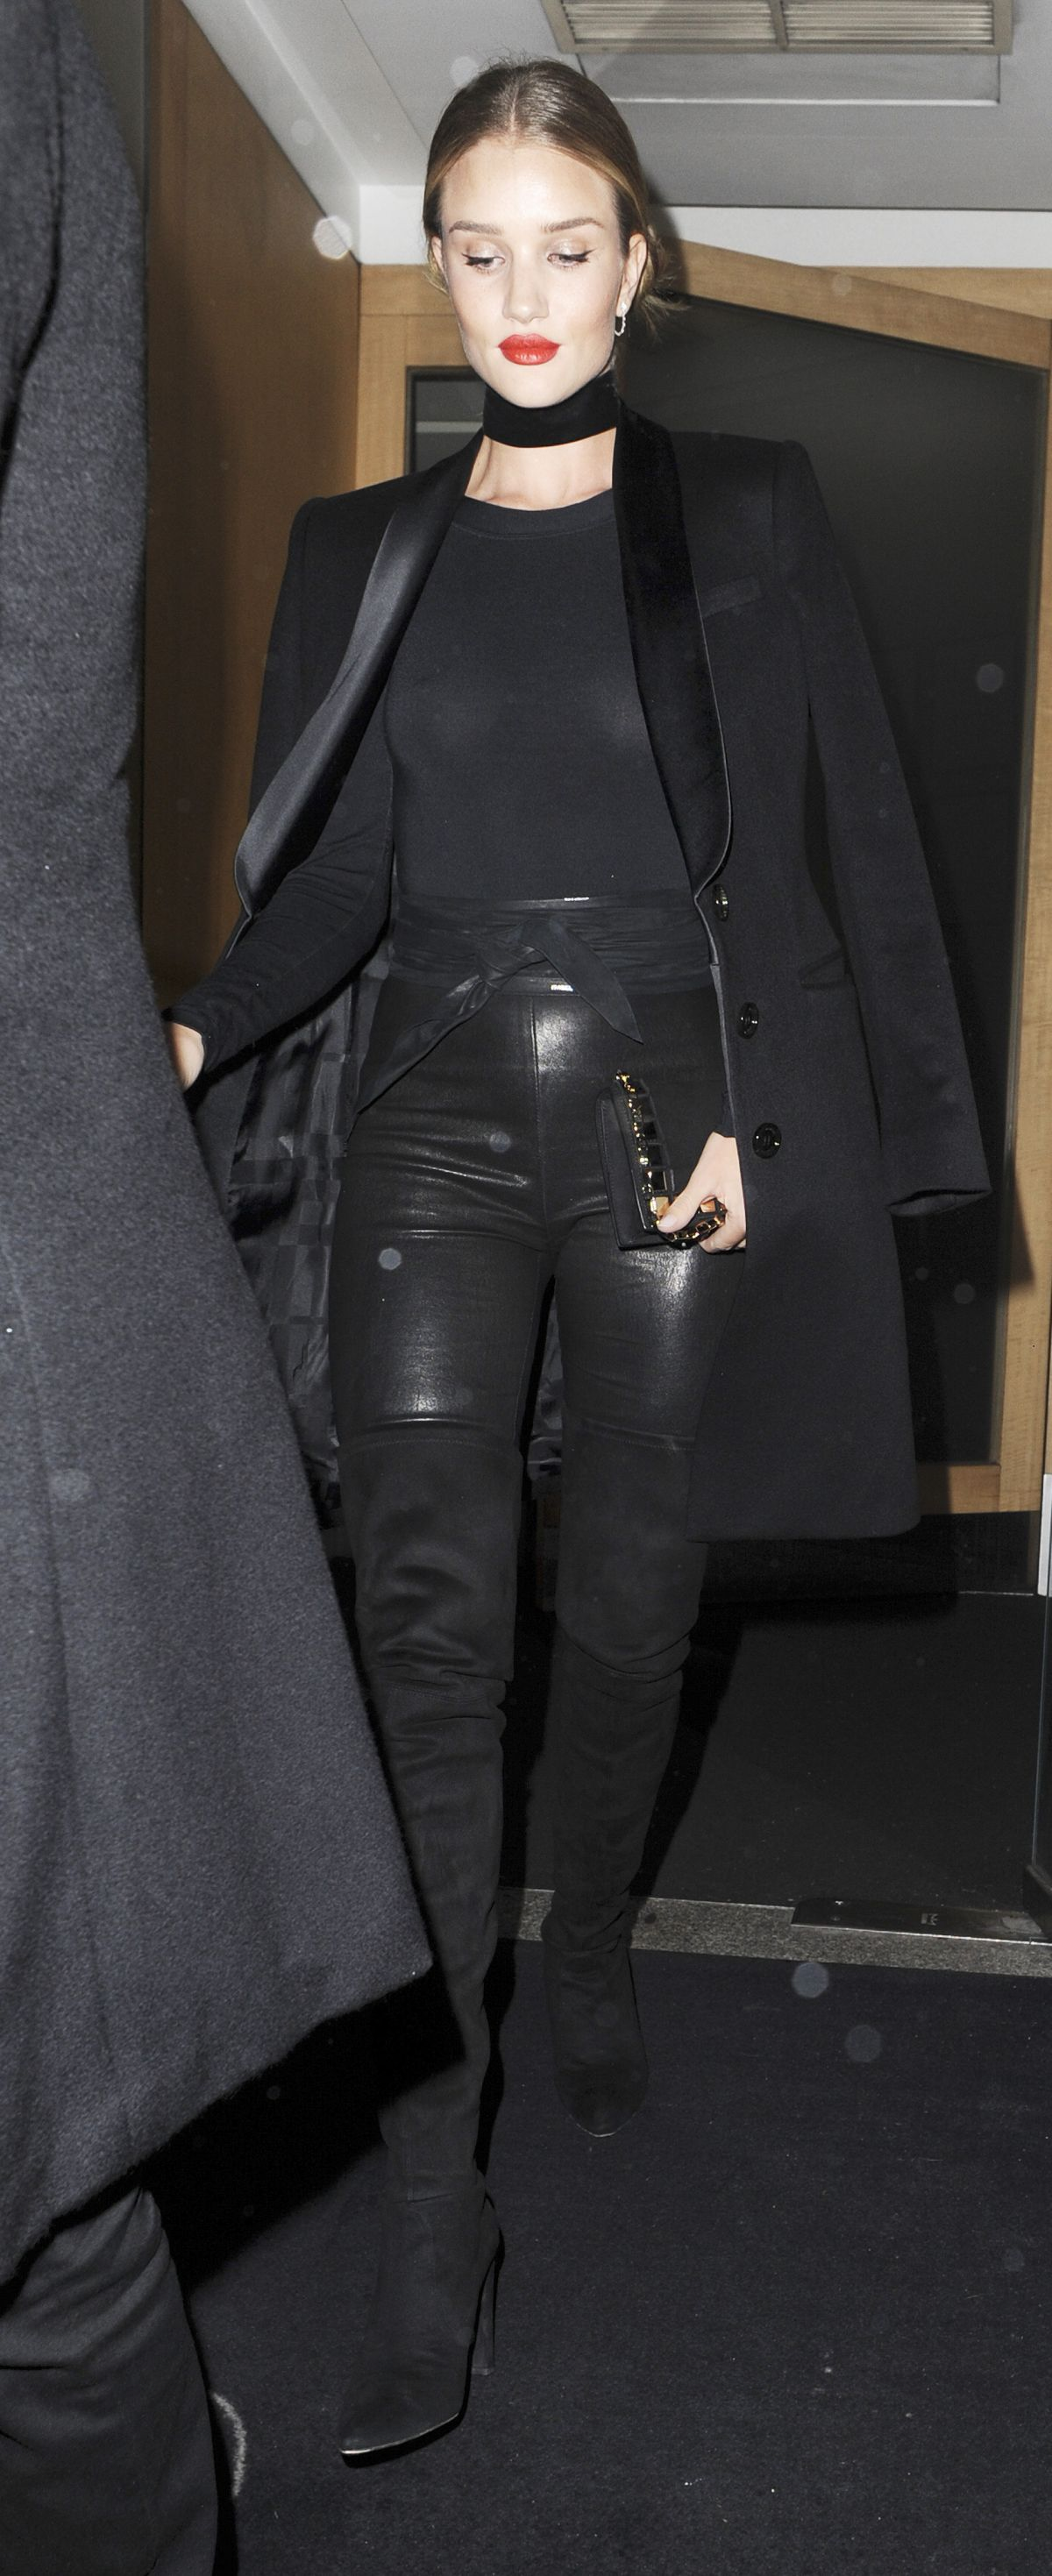 ROSIE HUNTINGTON-WHITELEY Leaves Nobu Restaurant in London 01/29/2016